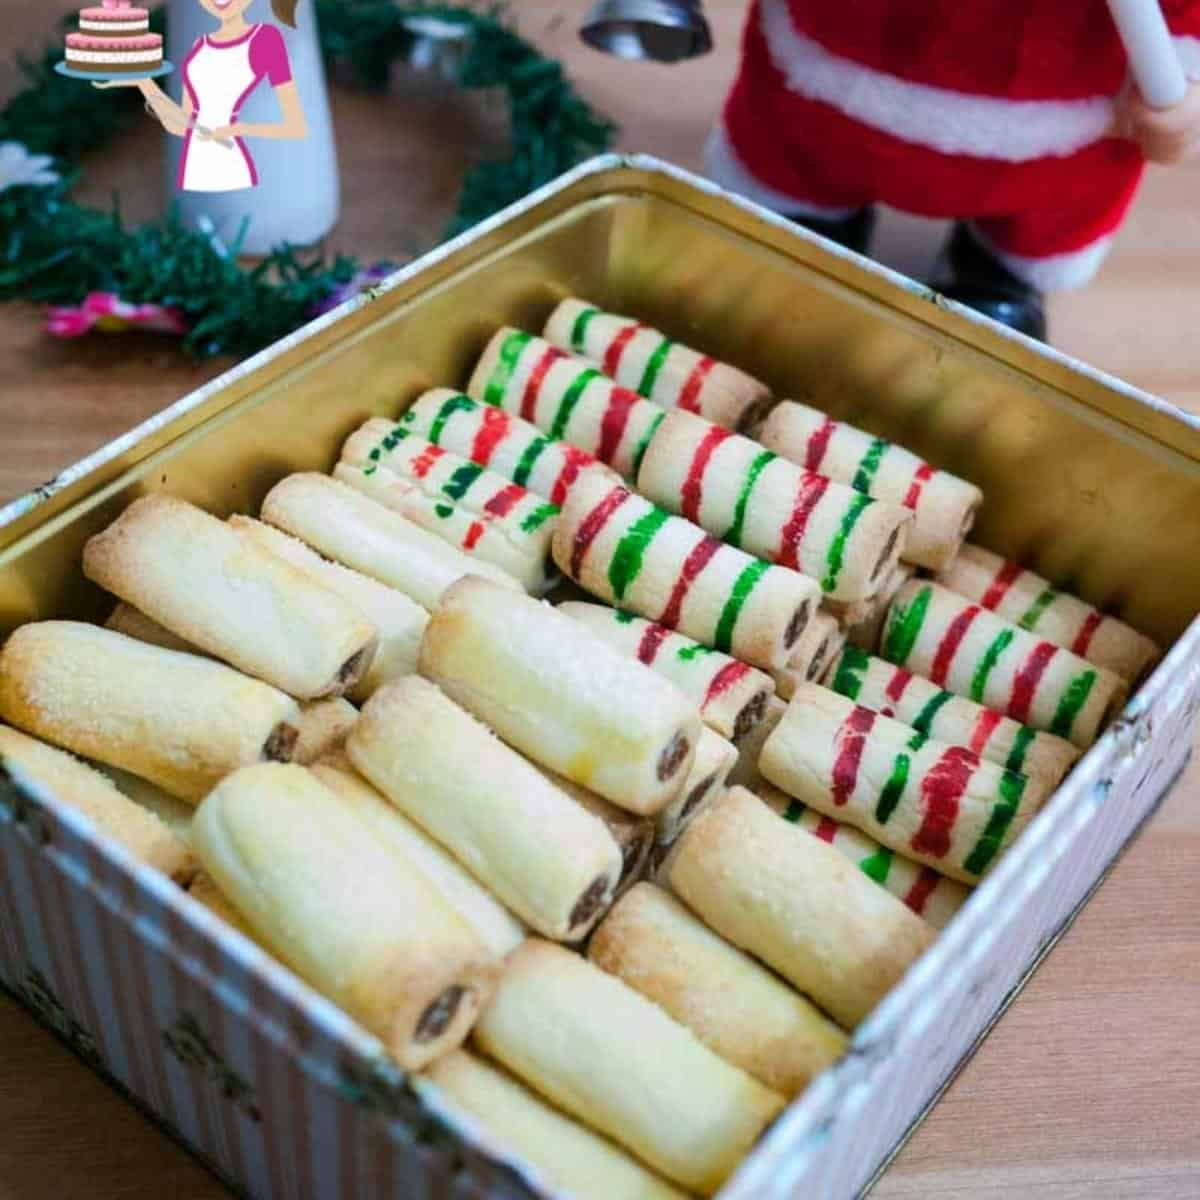 A cookie box with holiday cookies